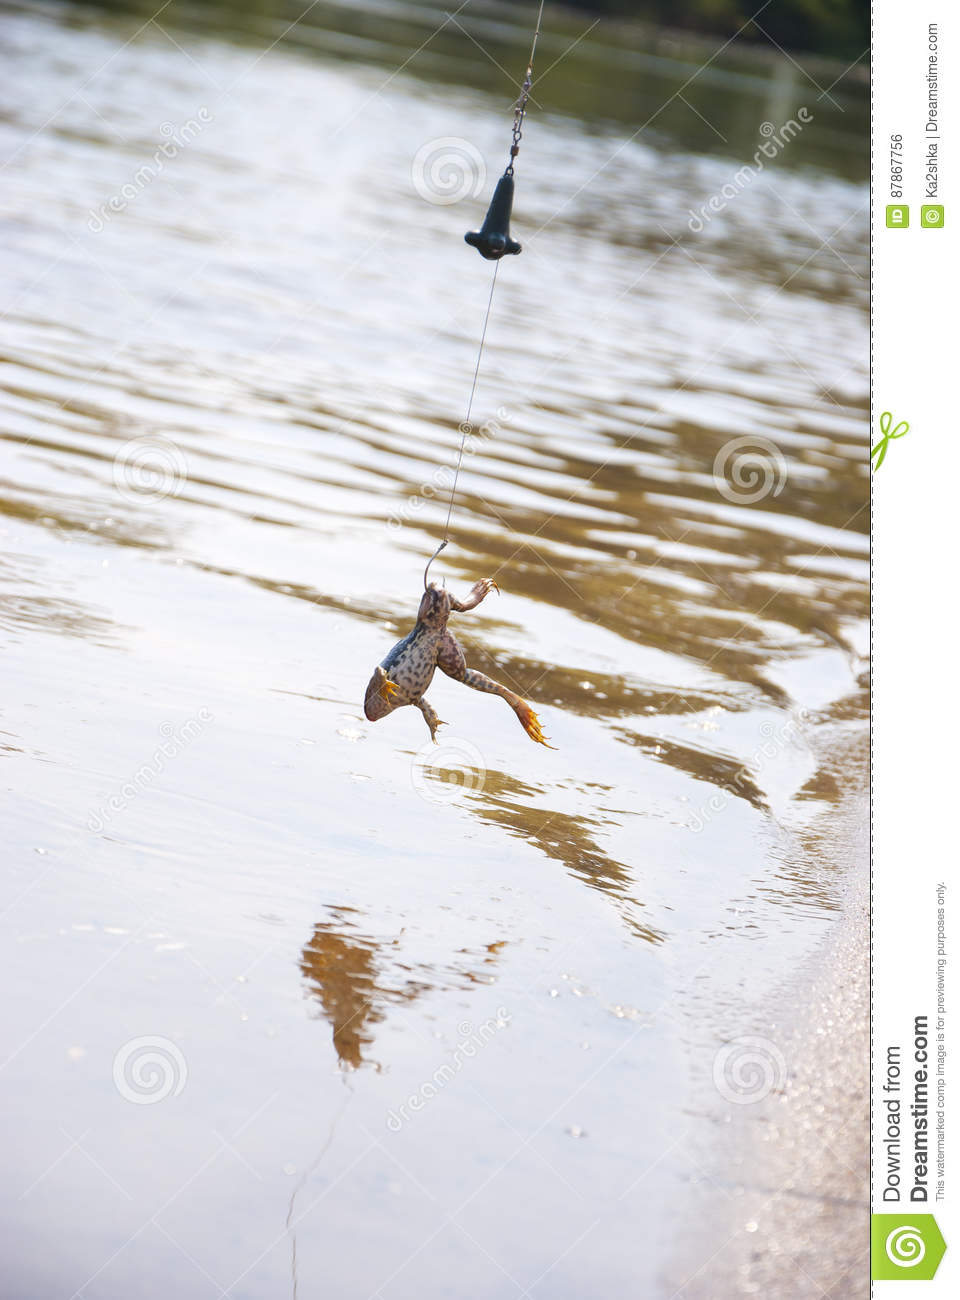 Fishing  Bait For Cat-fish - Frog On Hook On The River Stock Photo